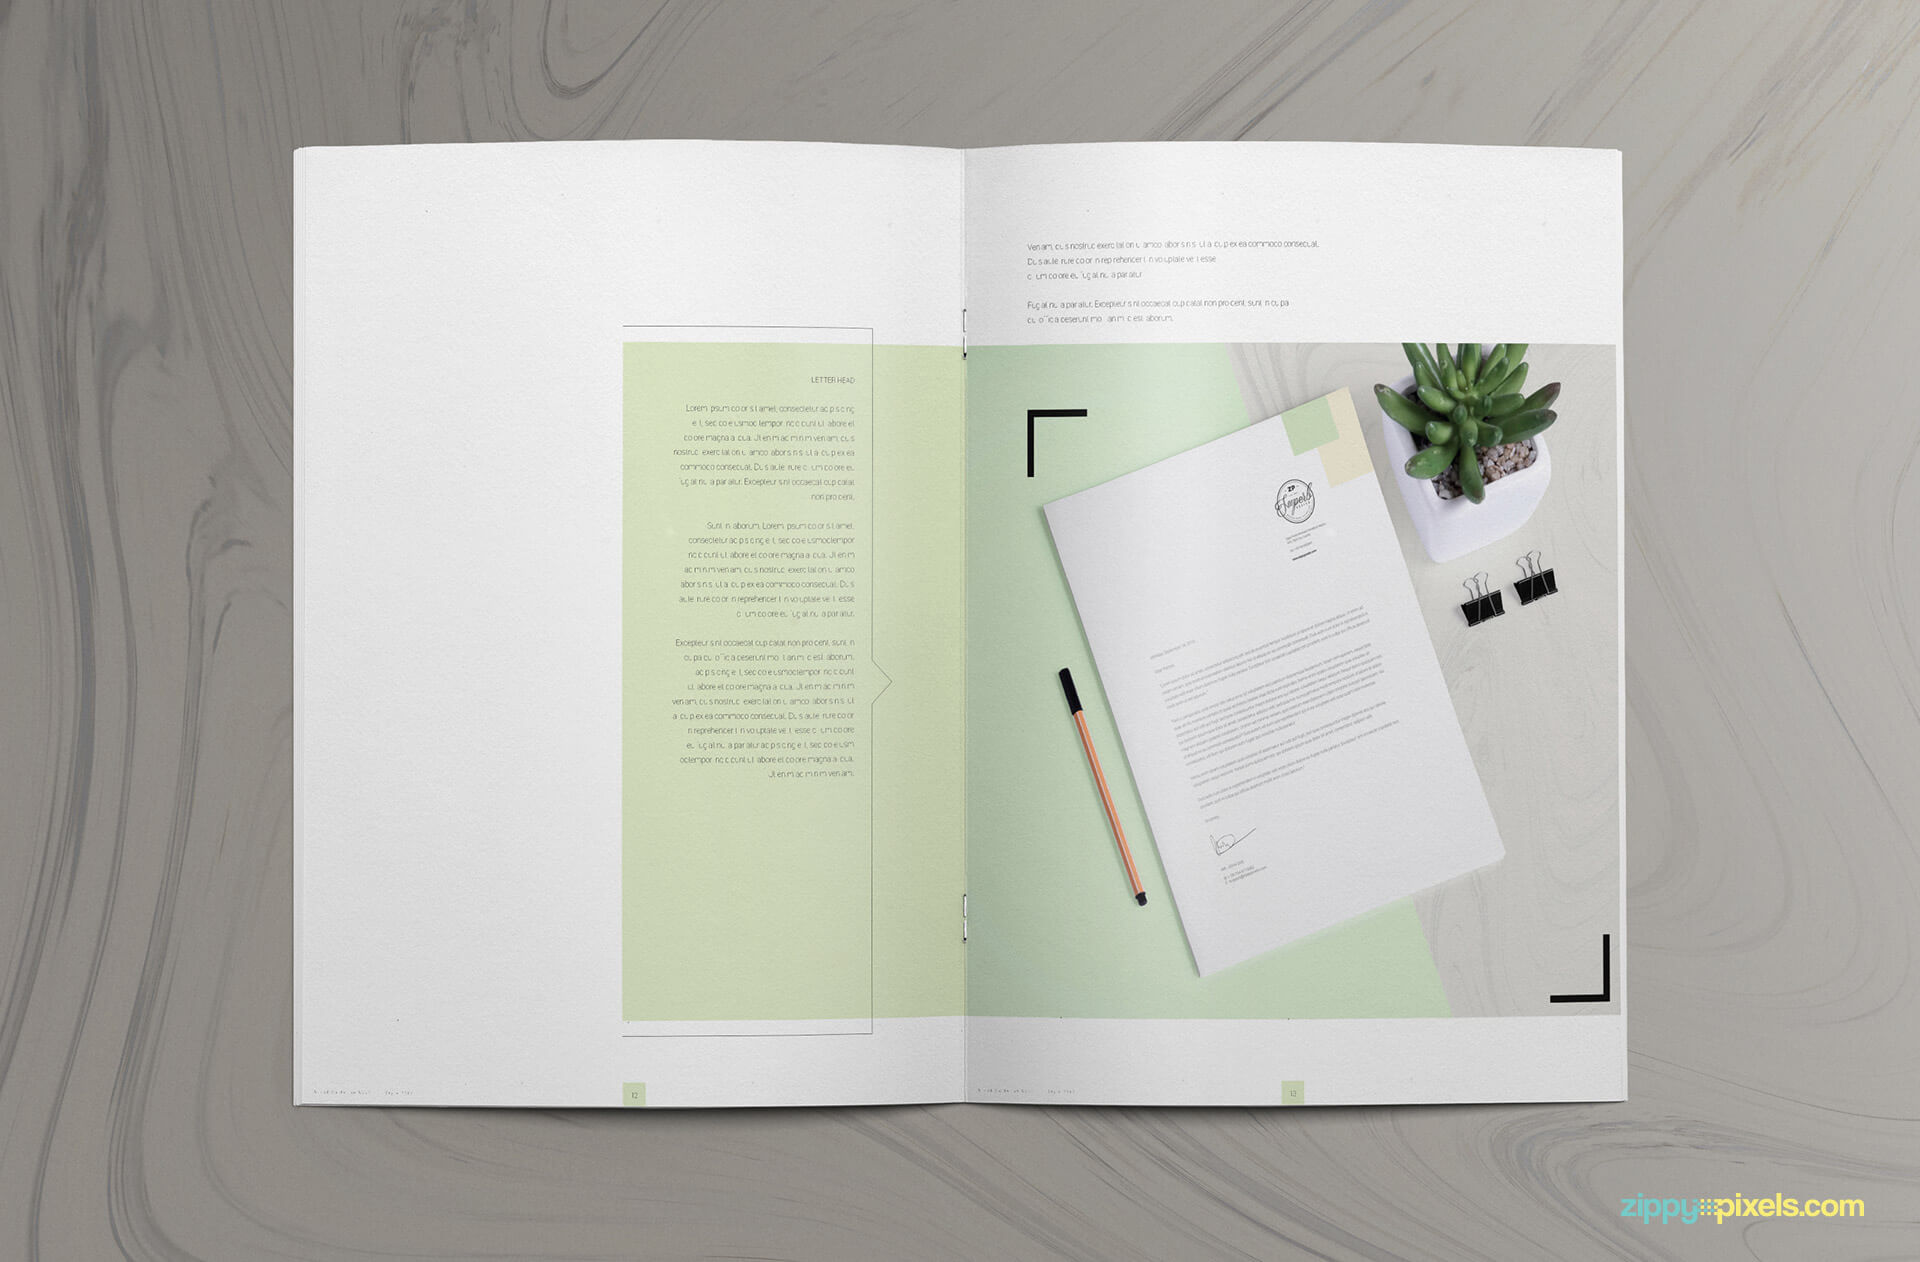 15 Professional Brand Guidelines Templates Bundle | ZippyPixels